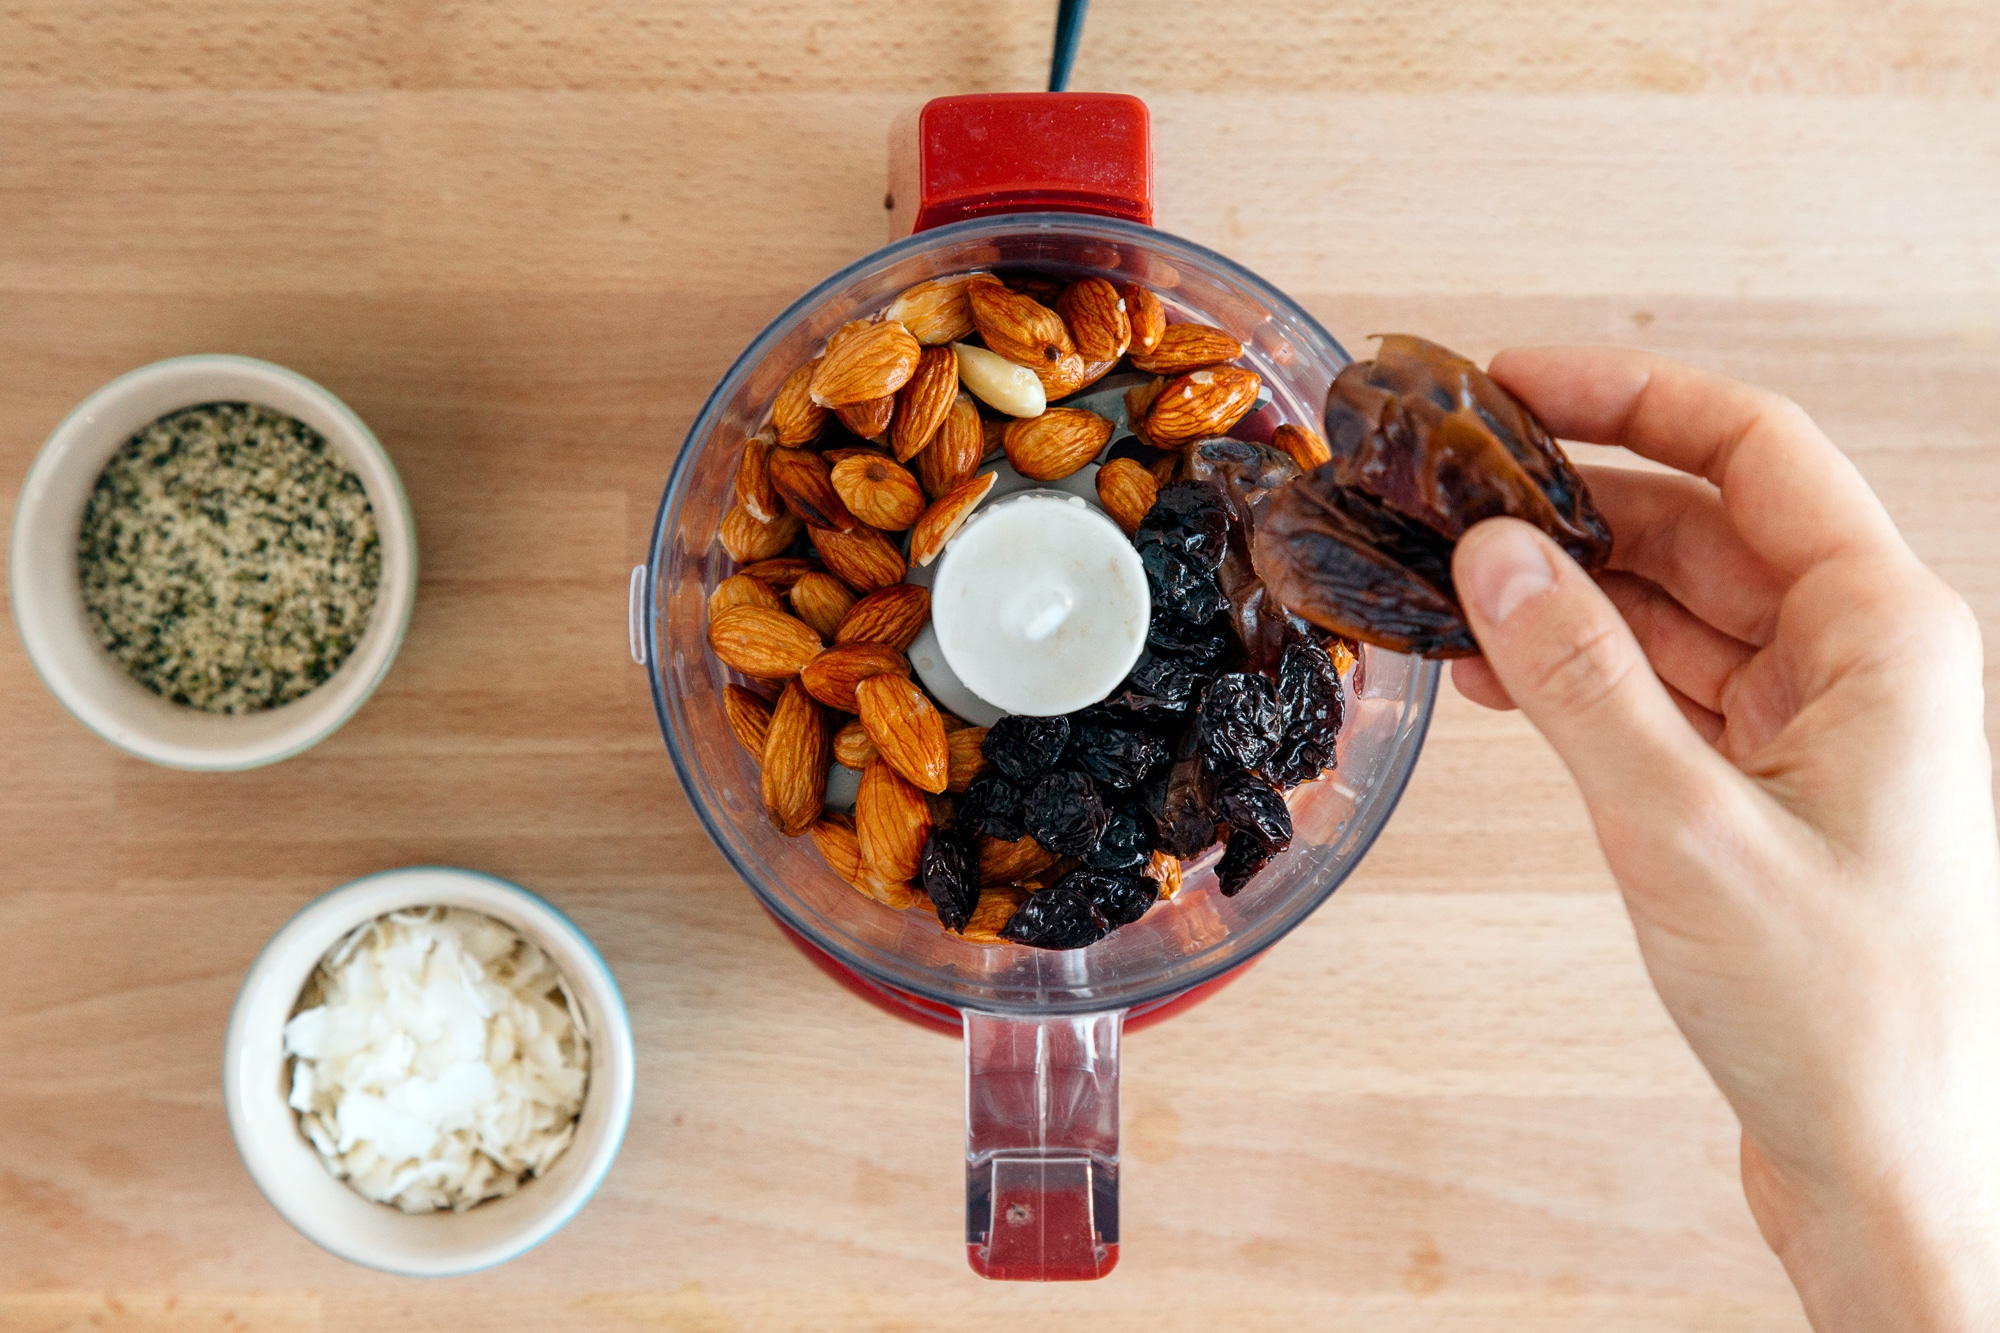 Adding dates into a food processor for energy balls